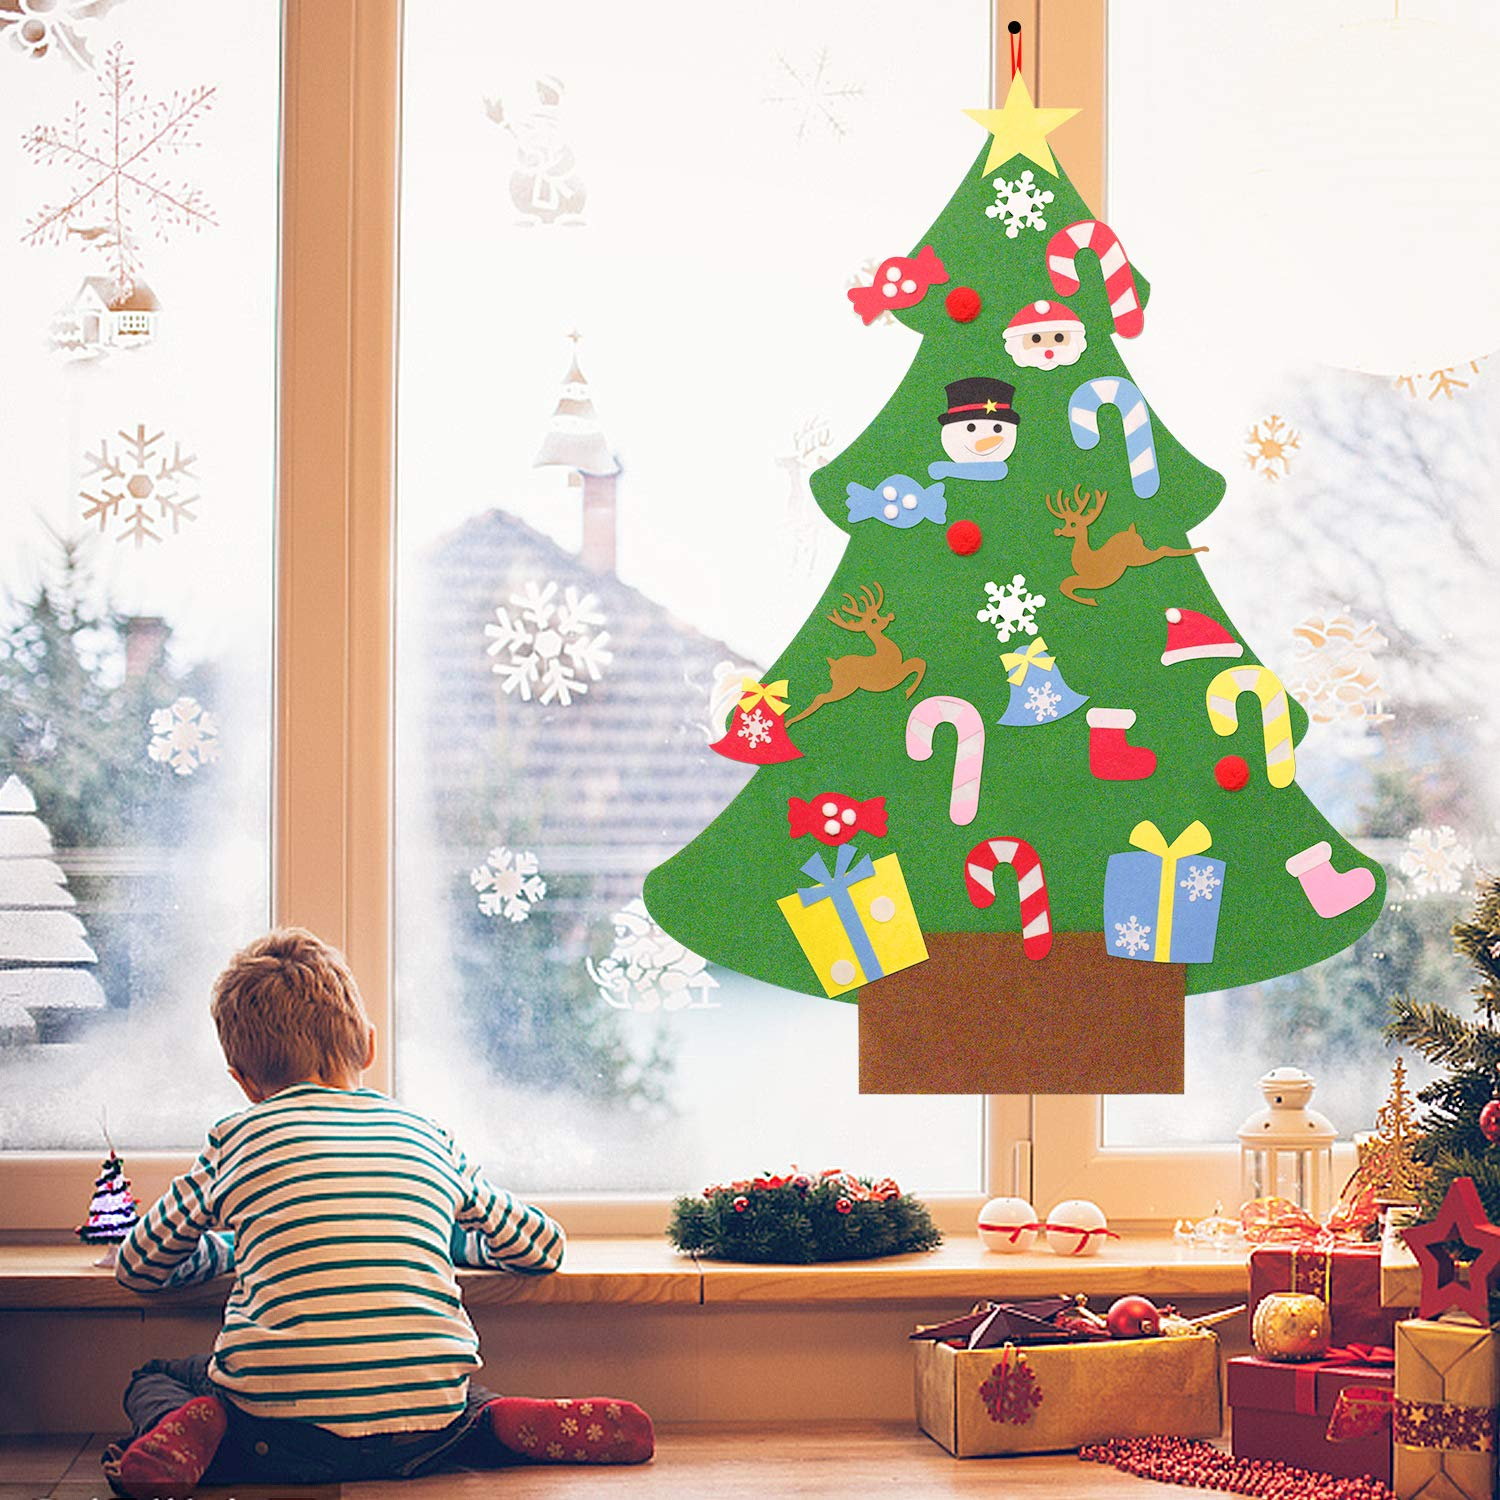 COSSCCI DIY Felt Christmas Tree for Kids Toddlers,40.5 Inches Christmas Tree with 25pcs Ornaments,Xmas Gifts, New Year Door Wall Hanging Decorations (3.3ft)